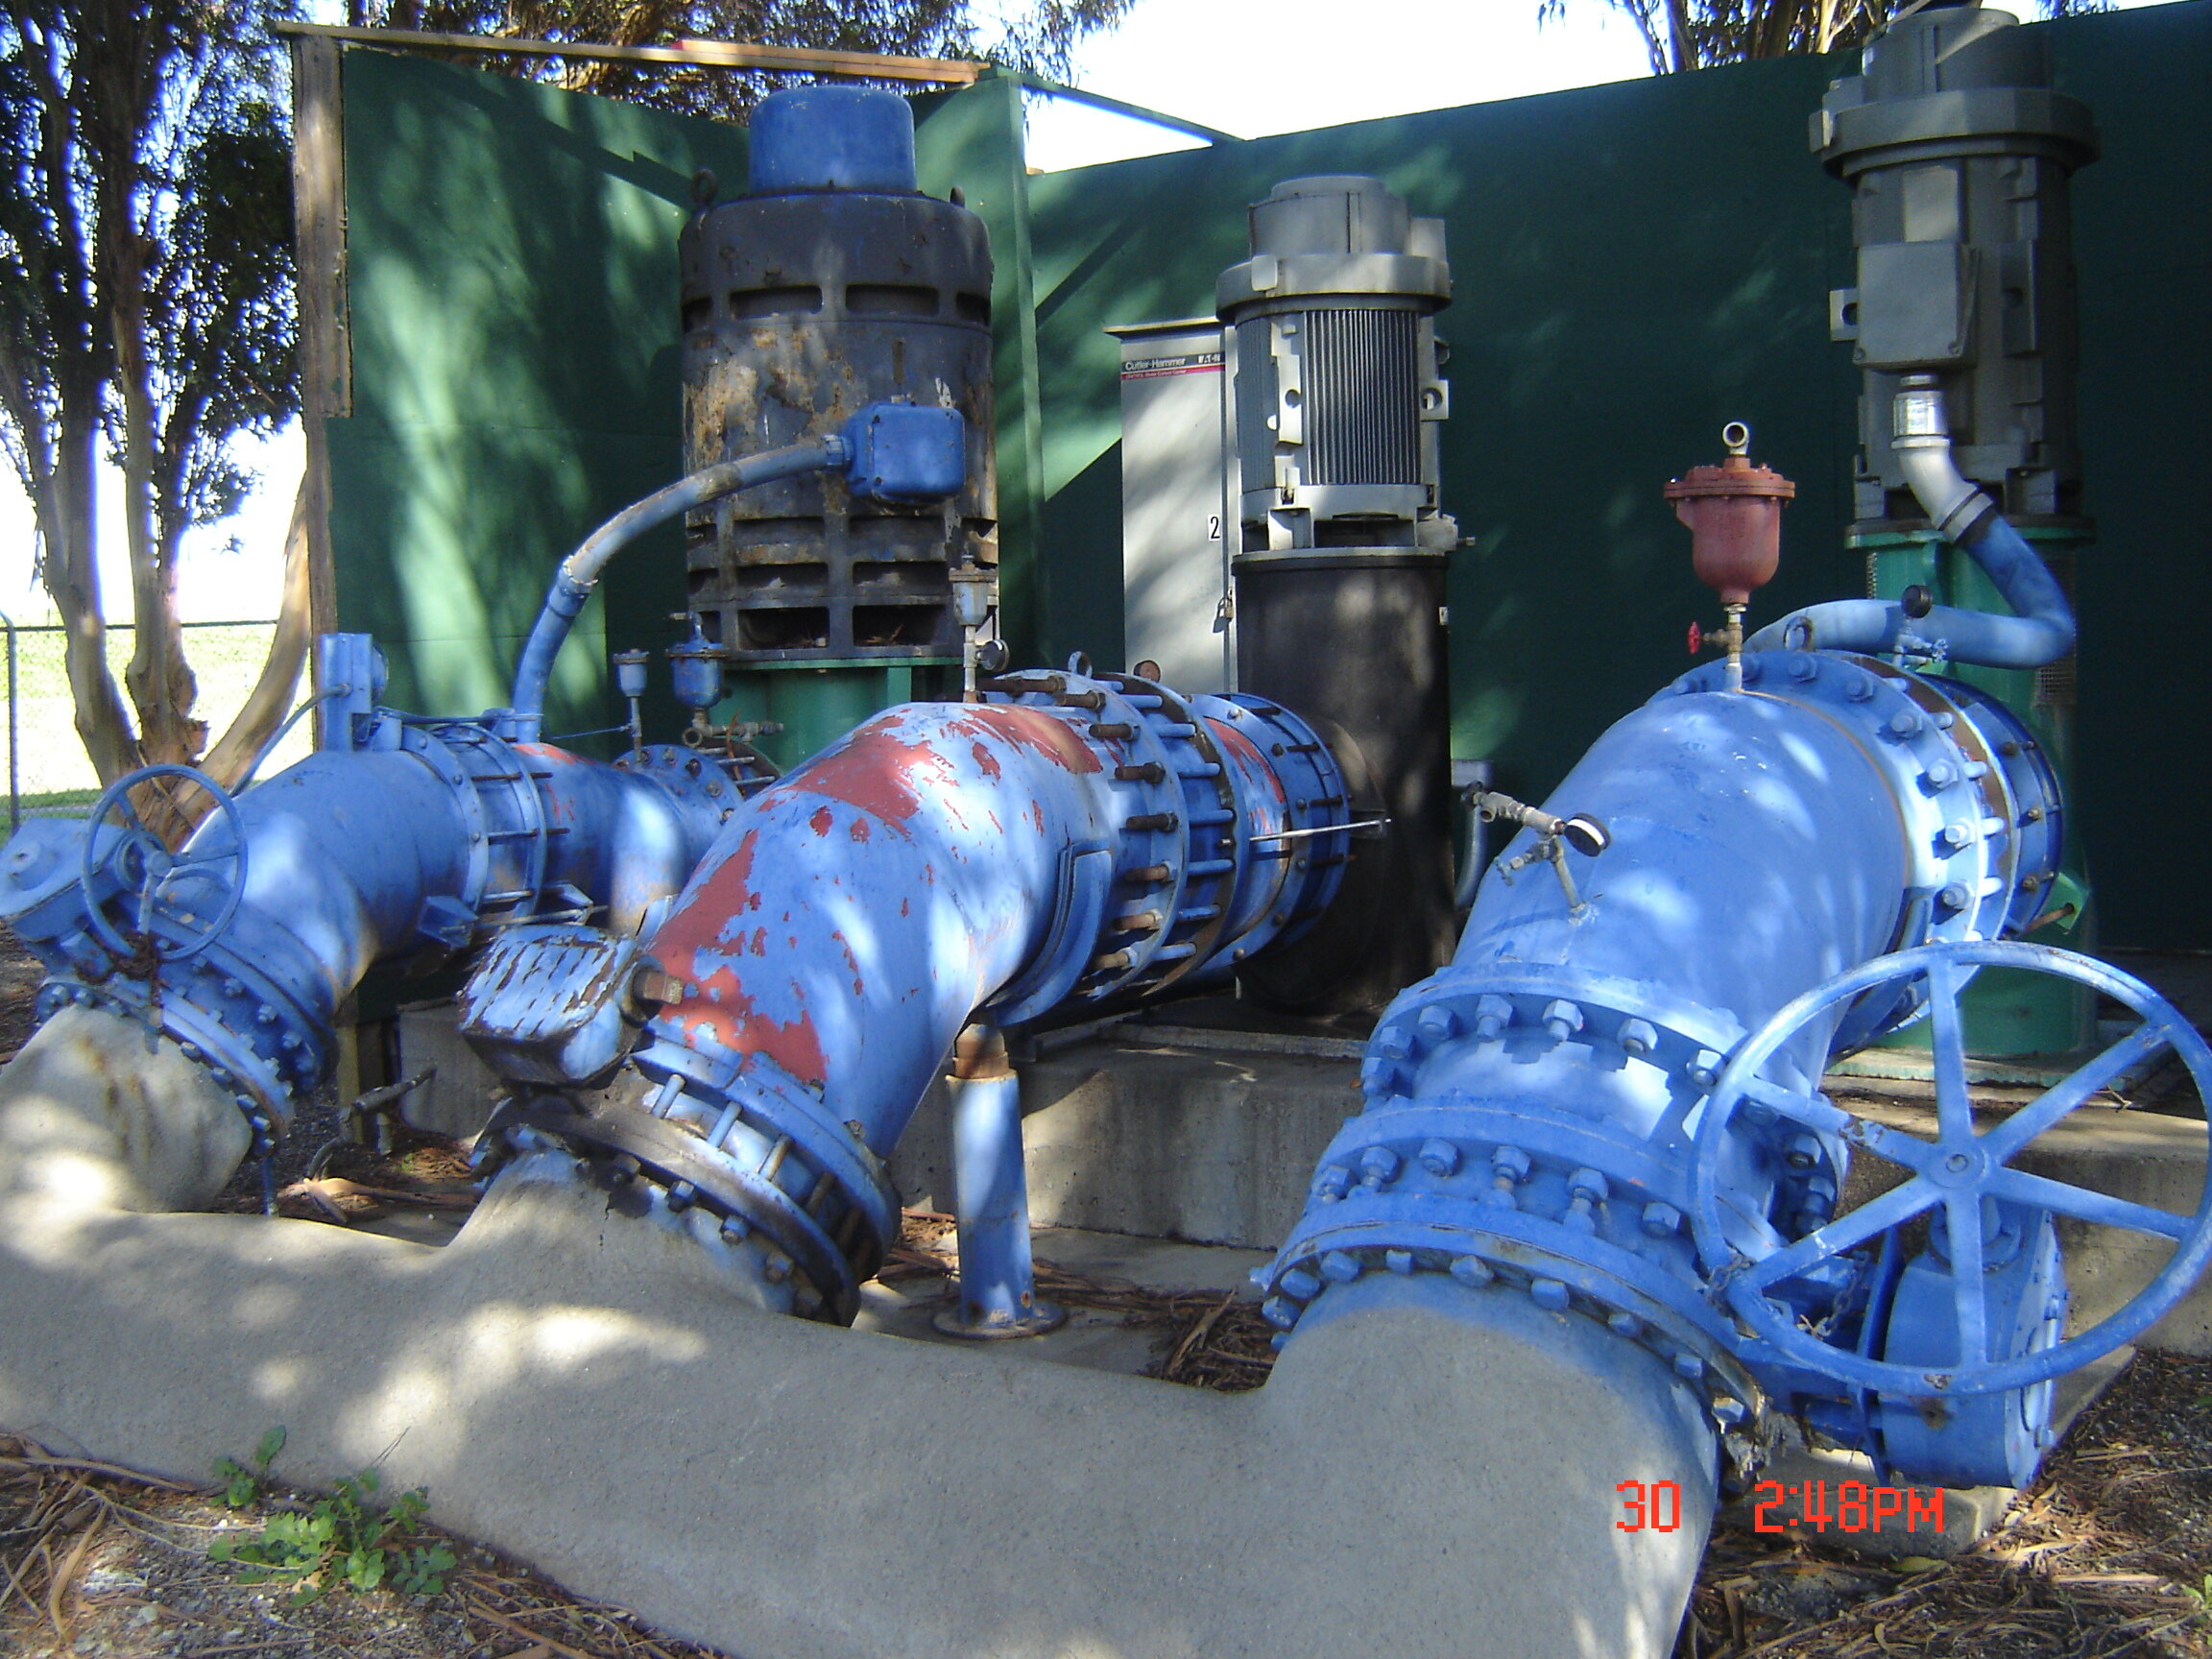 CONTRACT DISTRICT ENGINEER  The City retained Pakpour Consulting Group (PCG) to design pump upgrades in order to meet full capacity and improve overall efficiency.